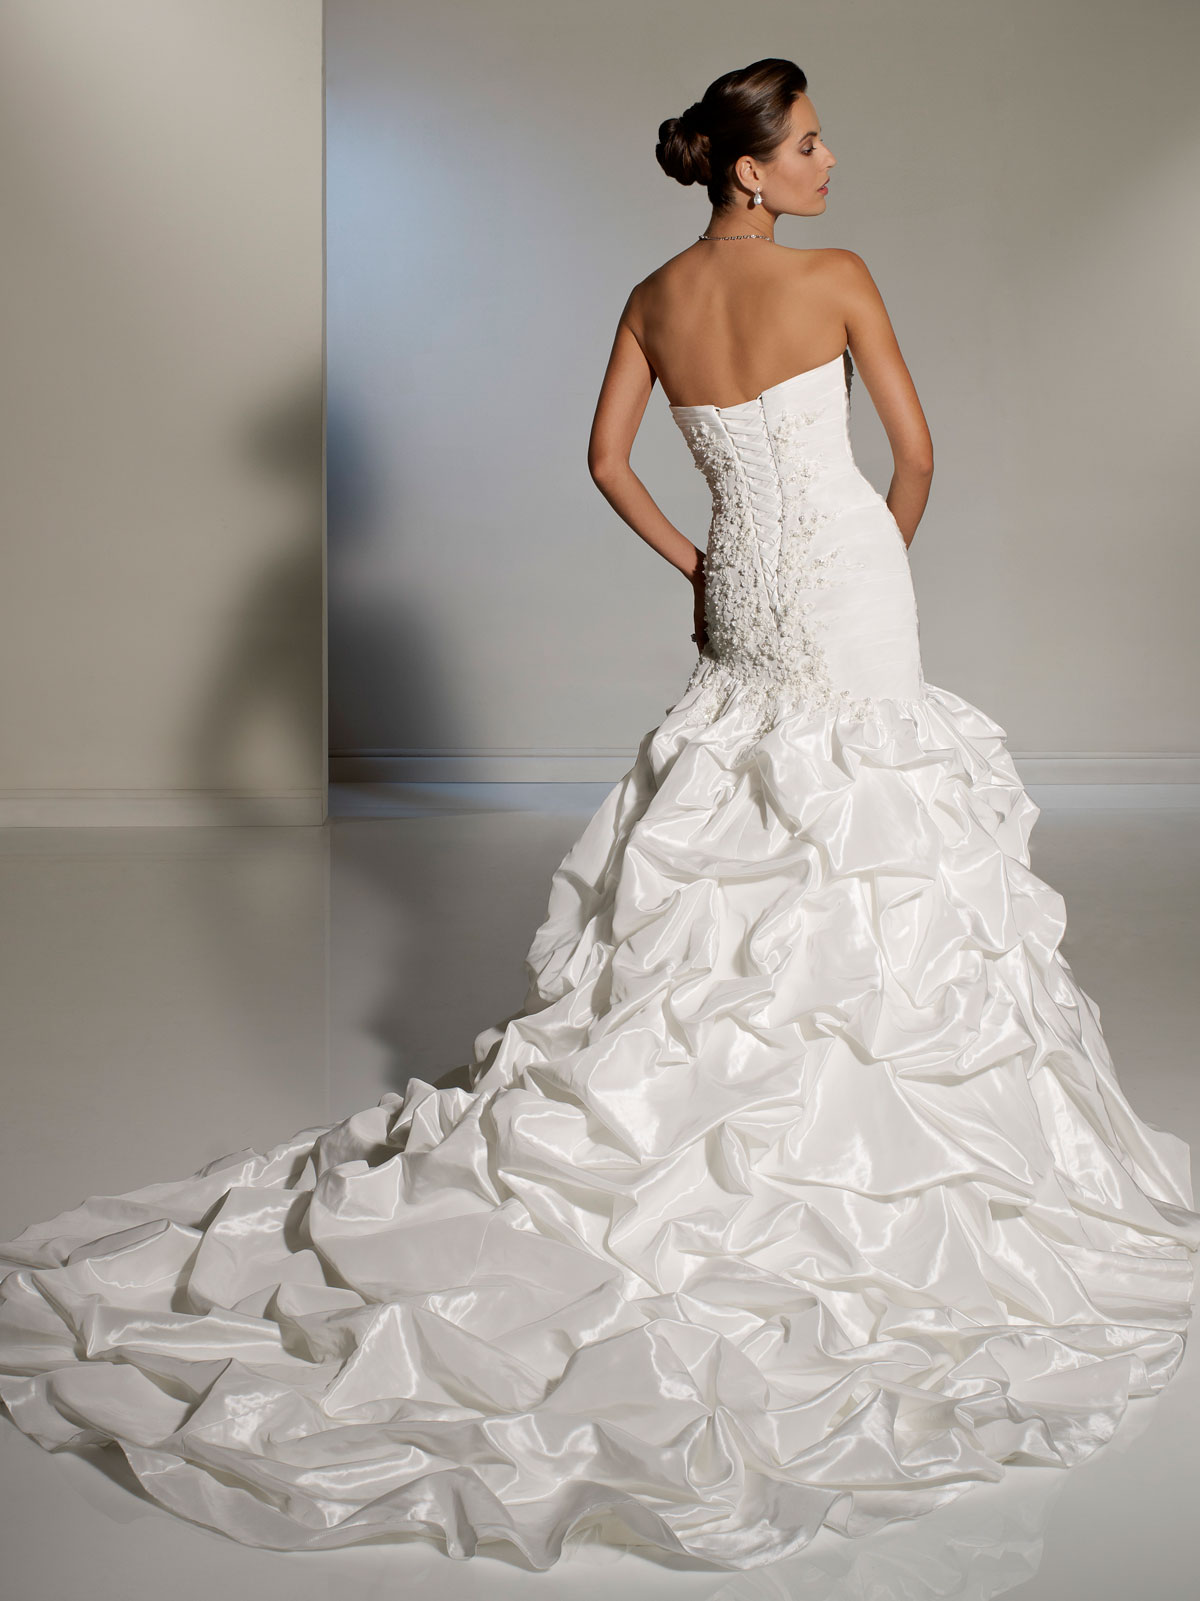 Strapless Wedding Gown With Waterfall Train